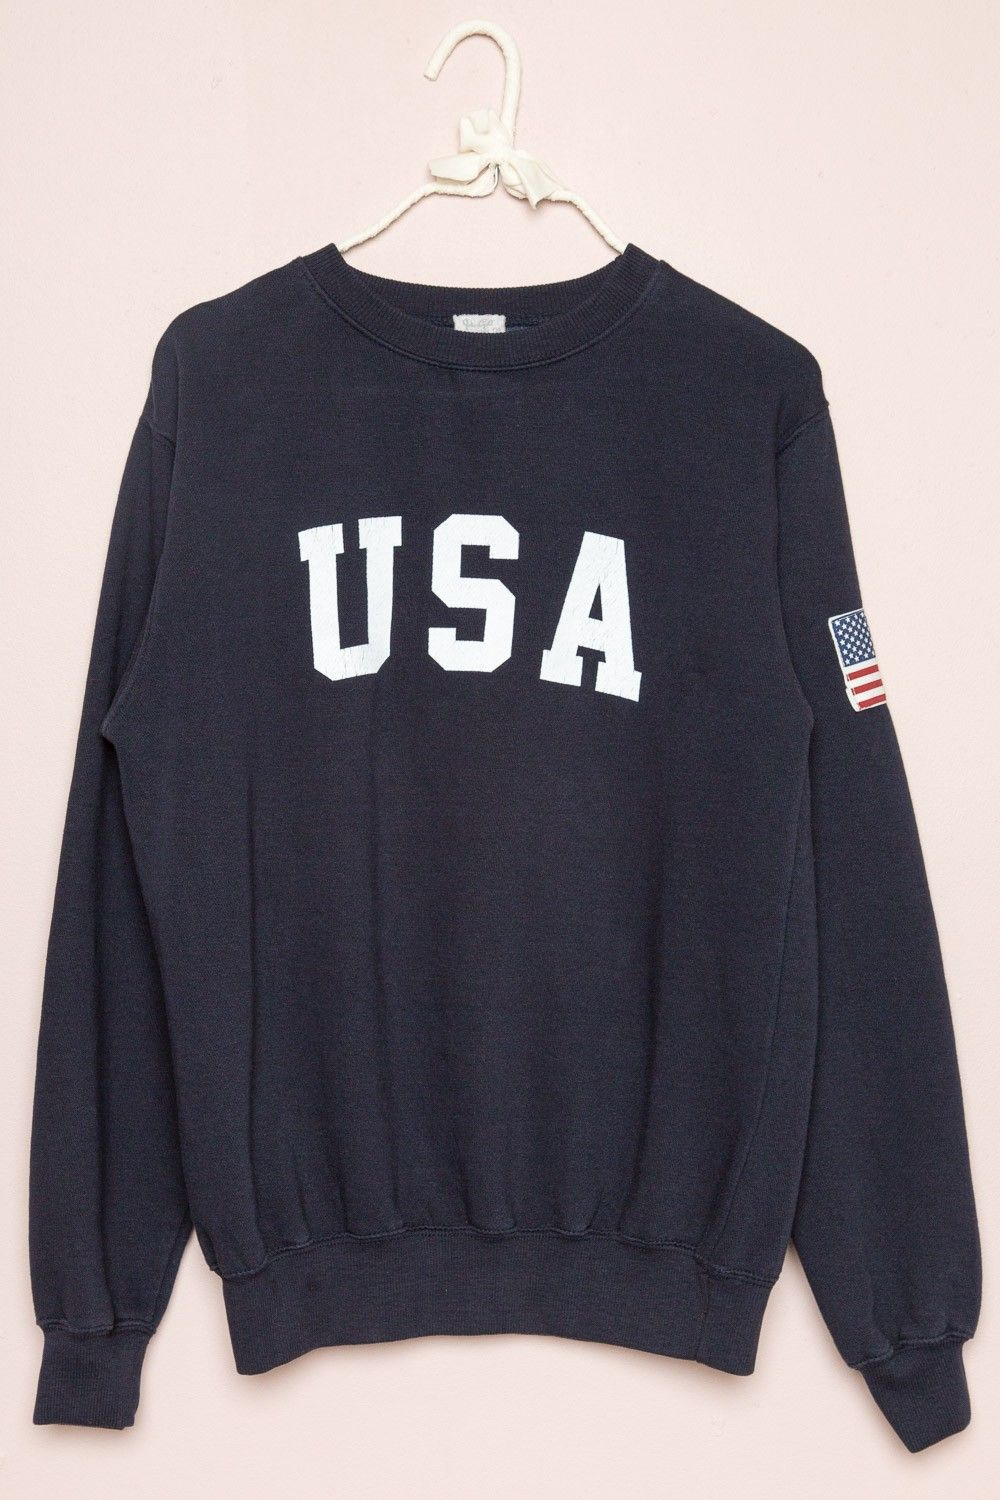 348d66d48 Brandy ♥ Melville | Erica USA Sweatshirt - Graphics | keepin' it ...